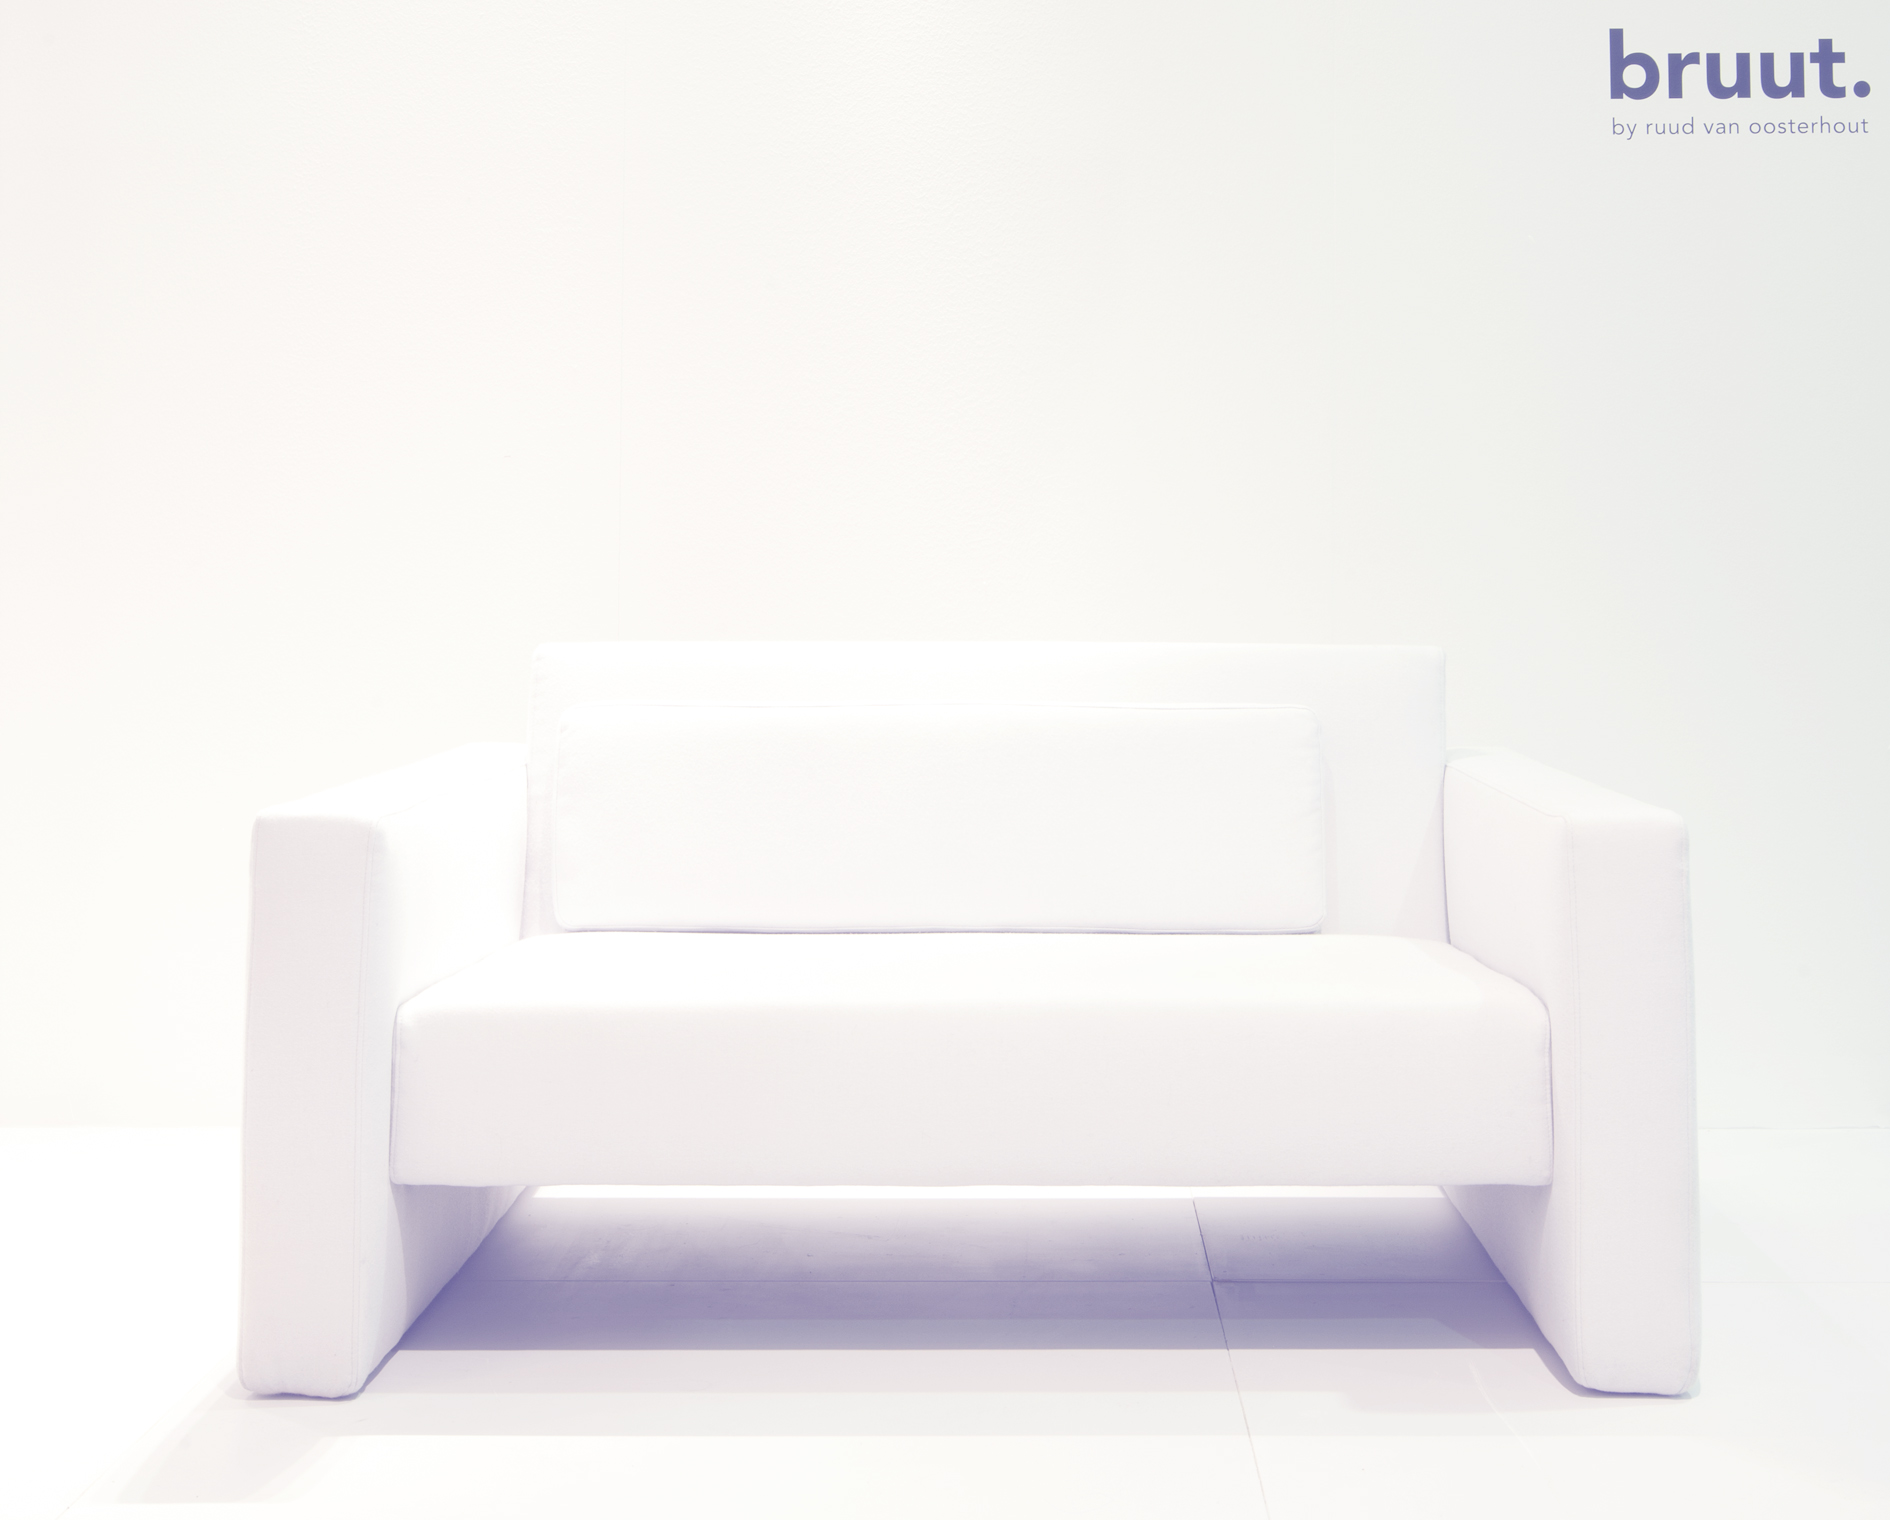 sofa delaneau by Bruut | Archello